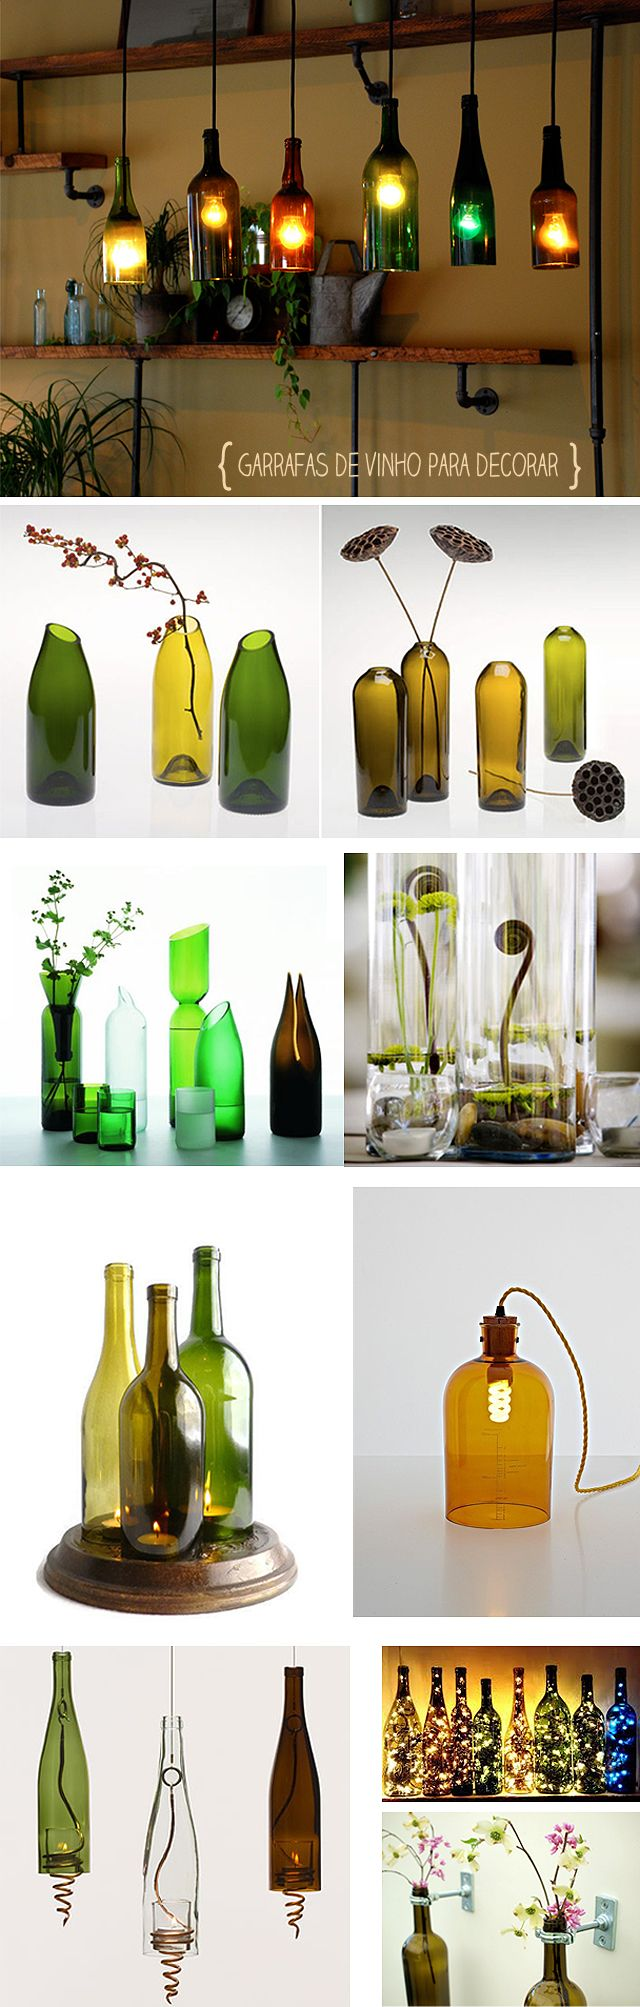 Many uses for wine bottles